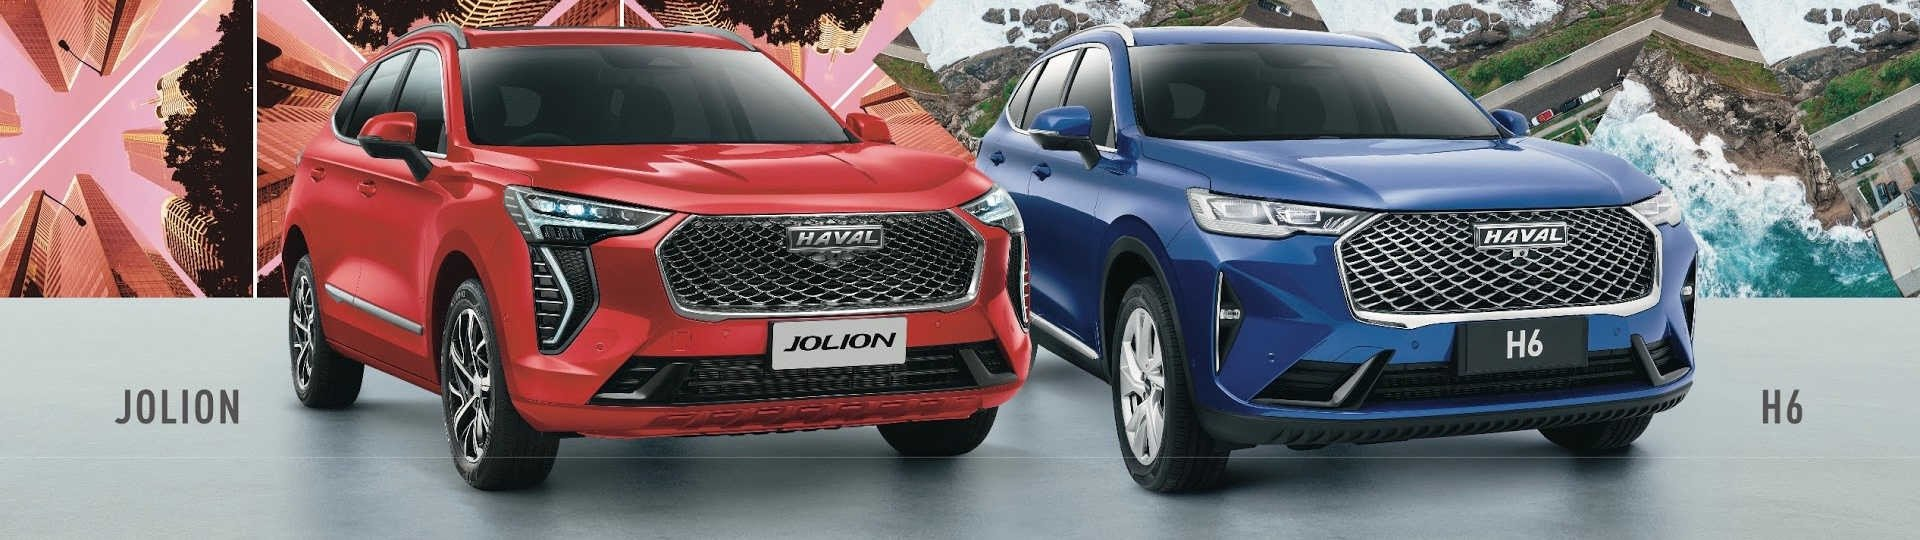 New Haval Jolion and Haval H6 SUV for sale in Perth